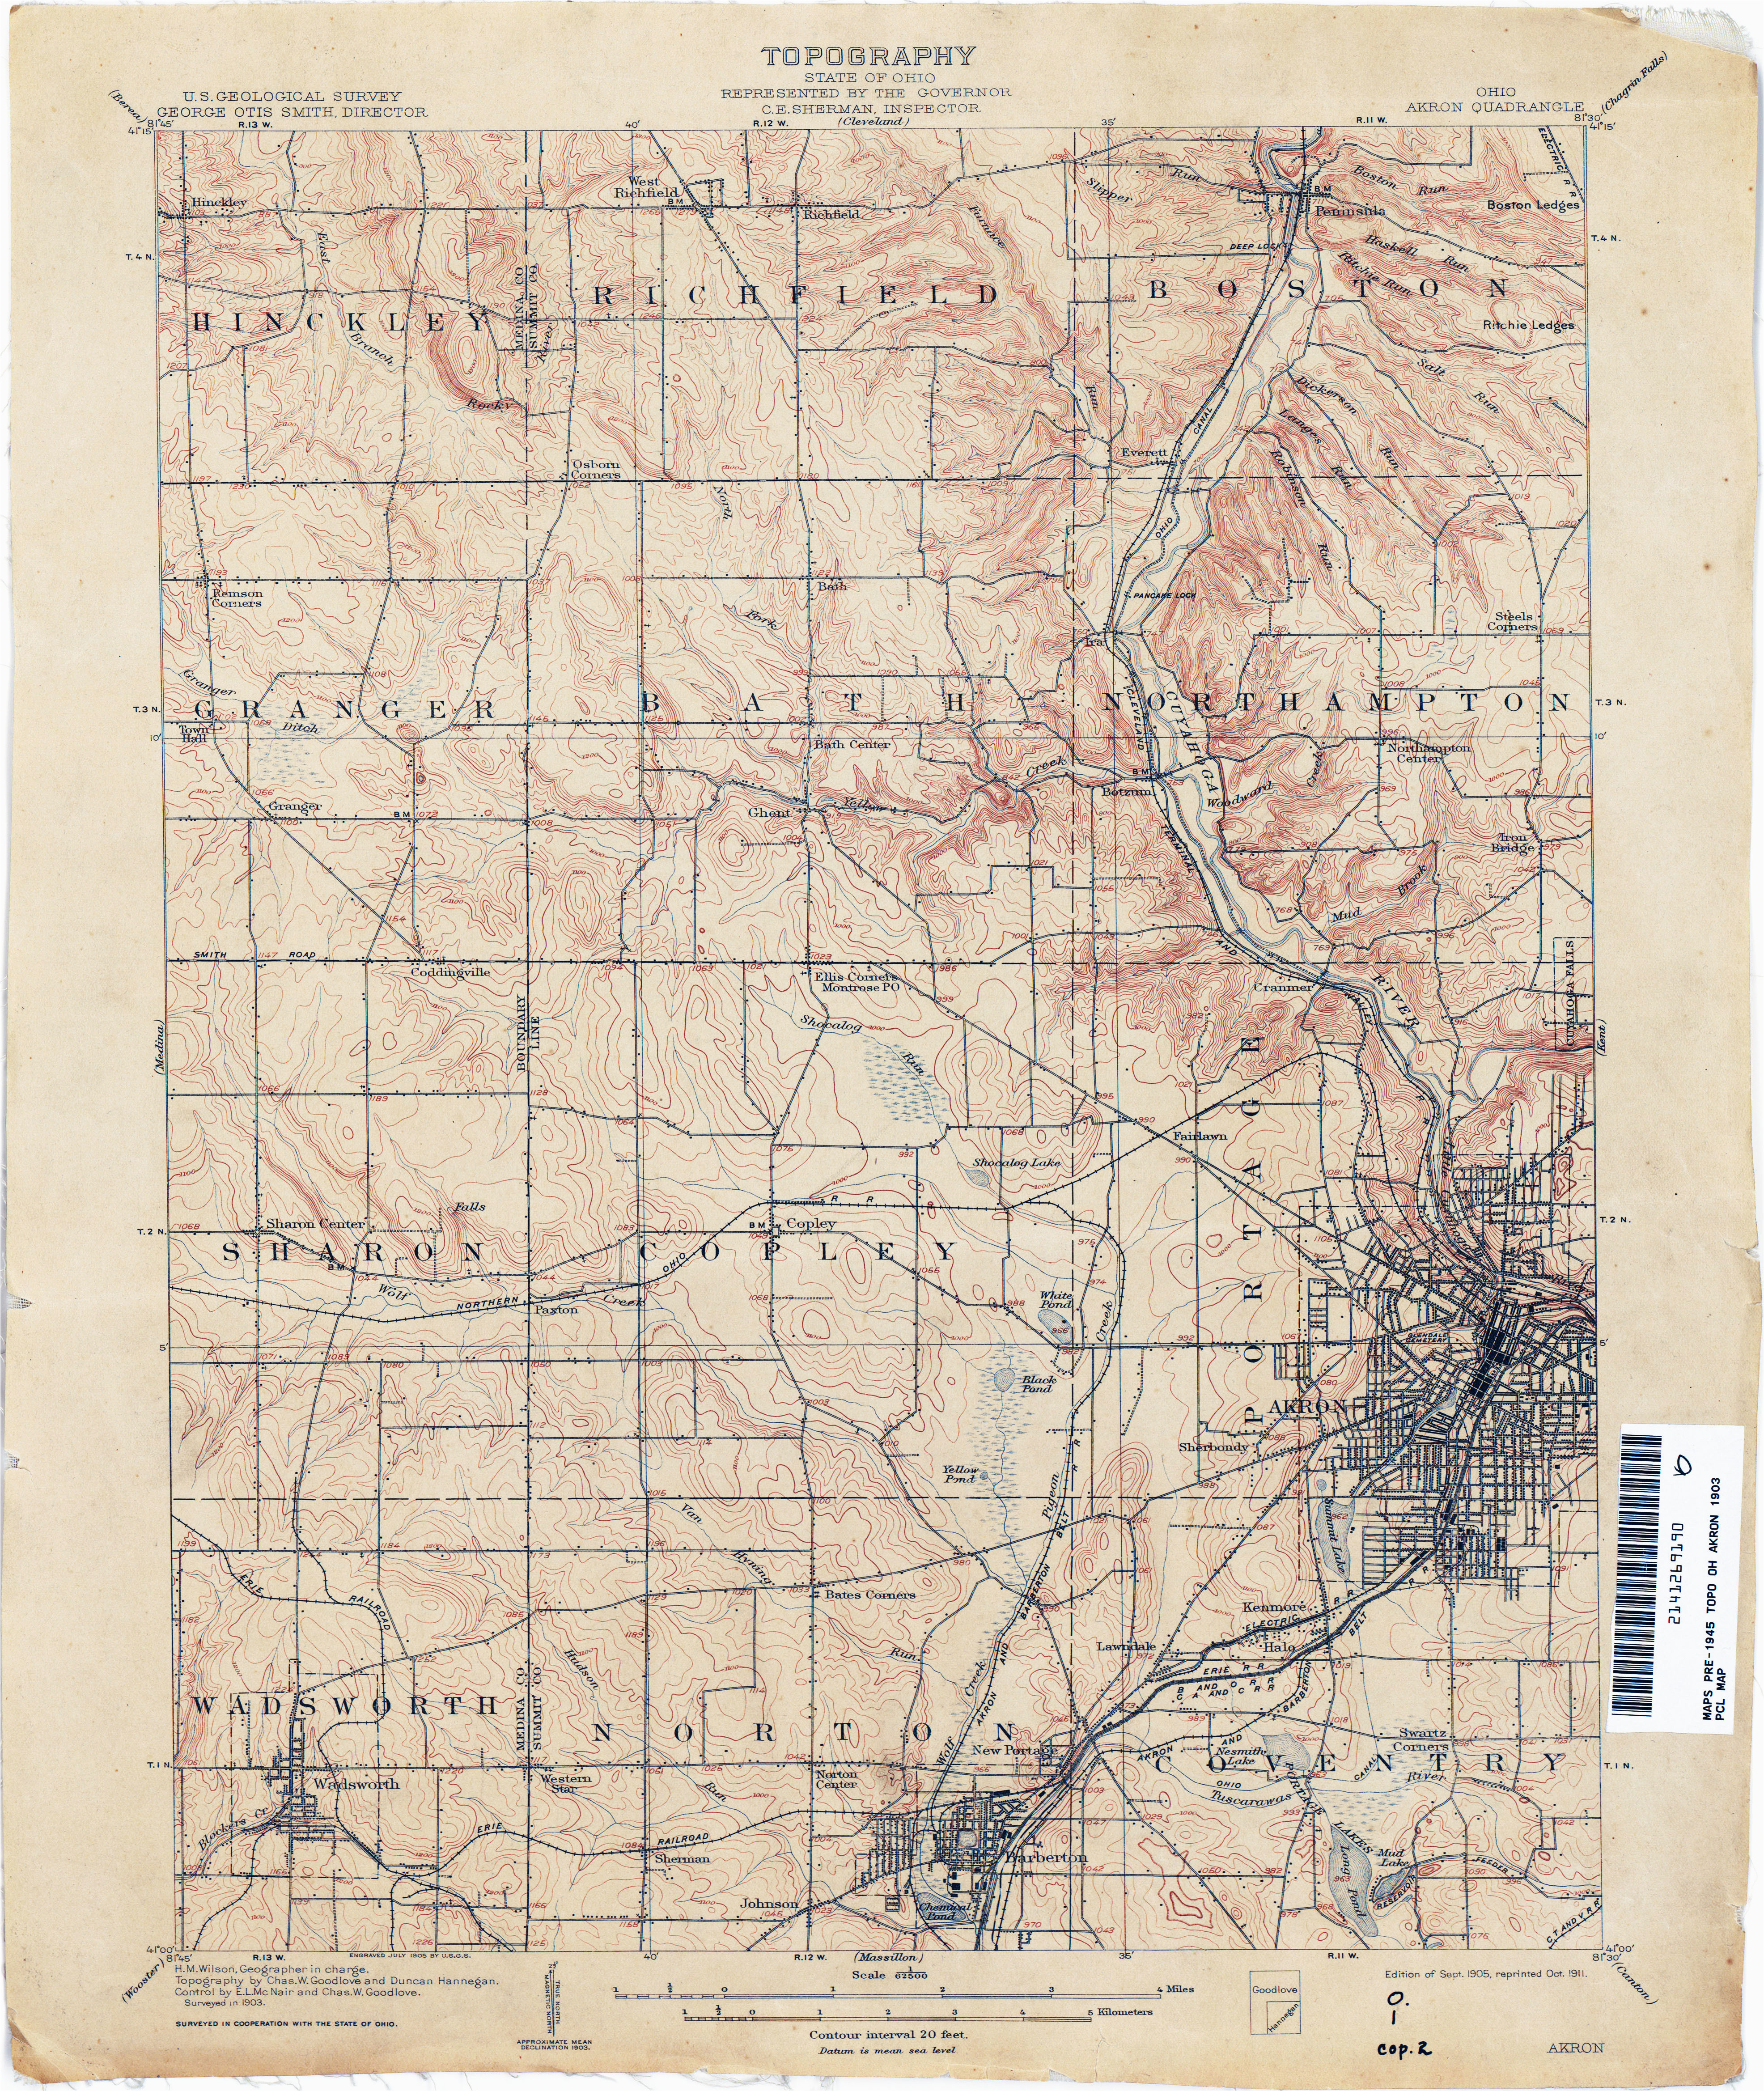 West Chester Ohio Map Ohio Historical topographic Maps Perry Castaa Eda Map Collection